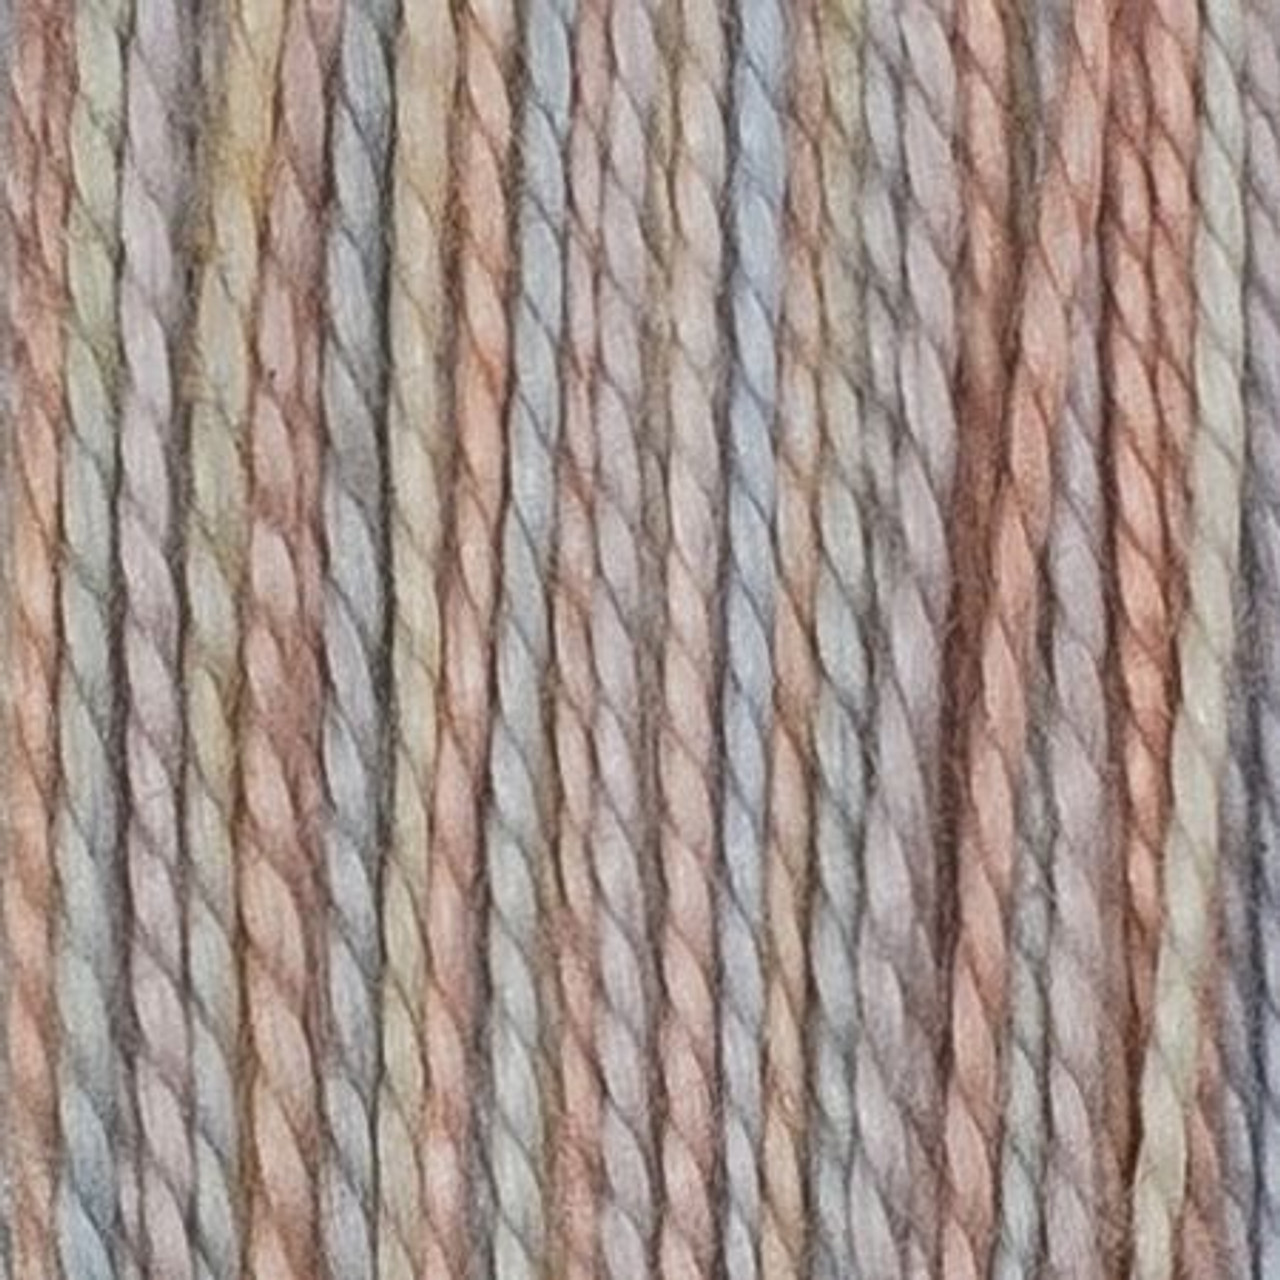 House of Embroidery : Cape Town Coastal Drive Collection, 8wt Perle Cotton - Birch (84B)